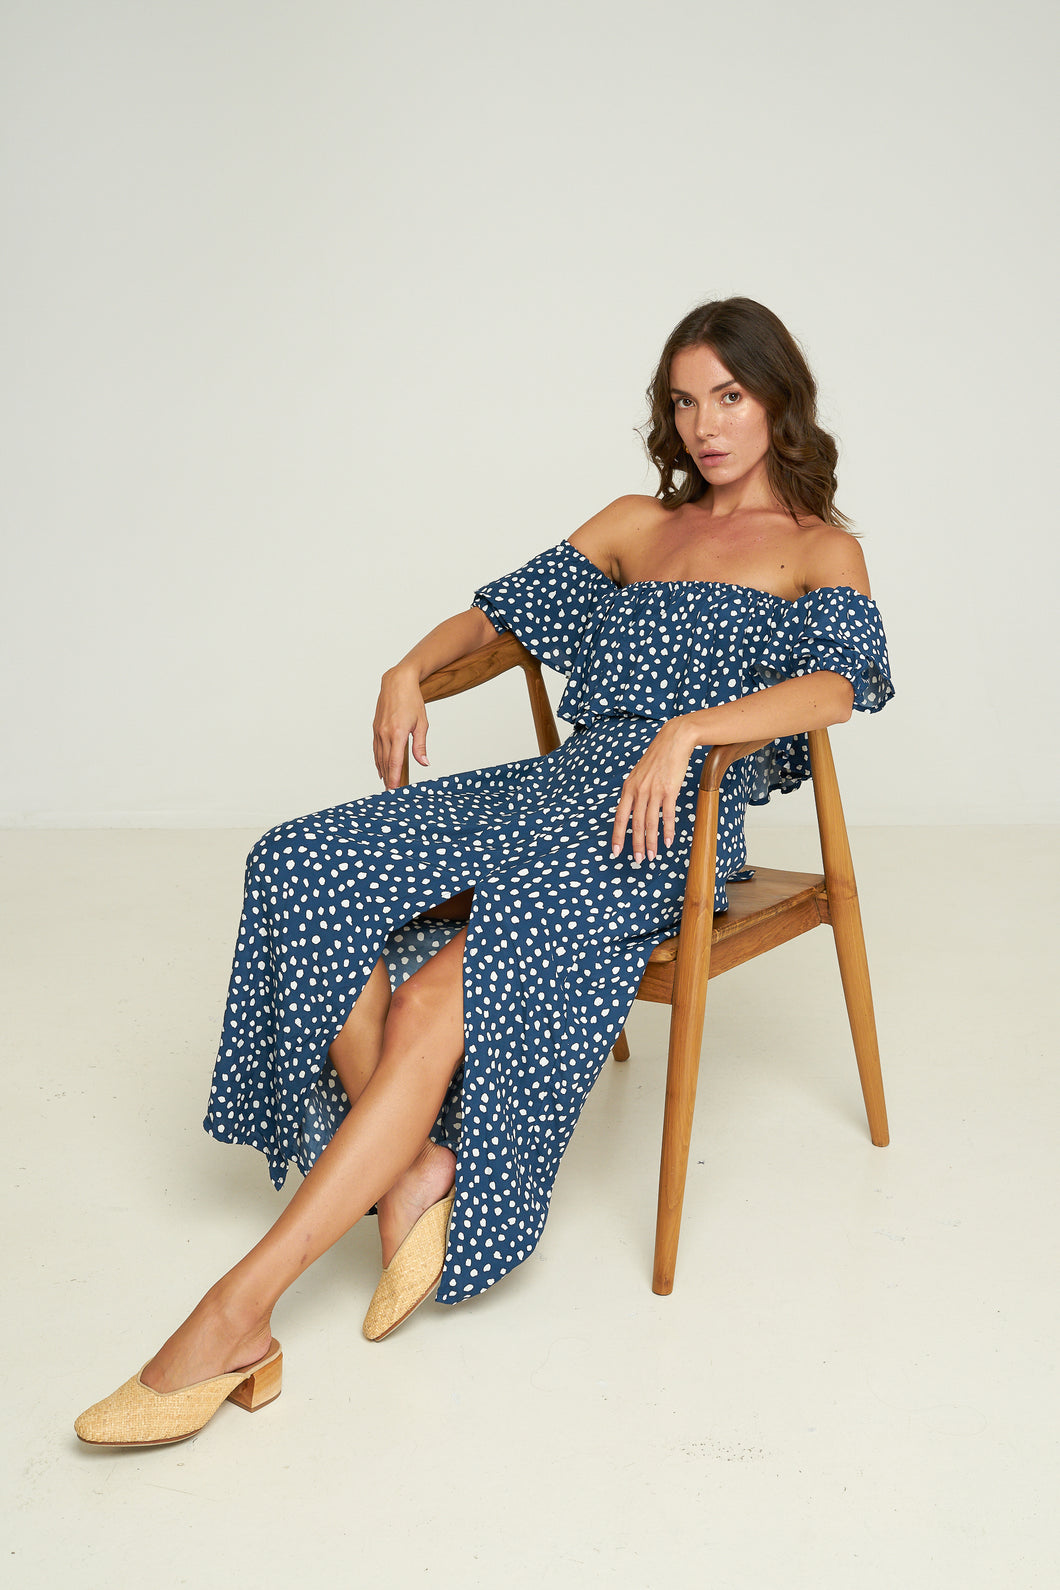 Rue Stiic Carla Dress Pebbles Navy, free shipping, Sustainable dresses, ethical dresses, off the shoulder dresses, spot print dresses, rayon dresses, midi dresses, handmade dresses, summer dresses, laid back luxe dresses, bohemian dresses, off duty dresses, on duty dresses, wardrobe staples